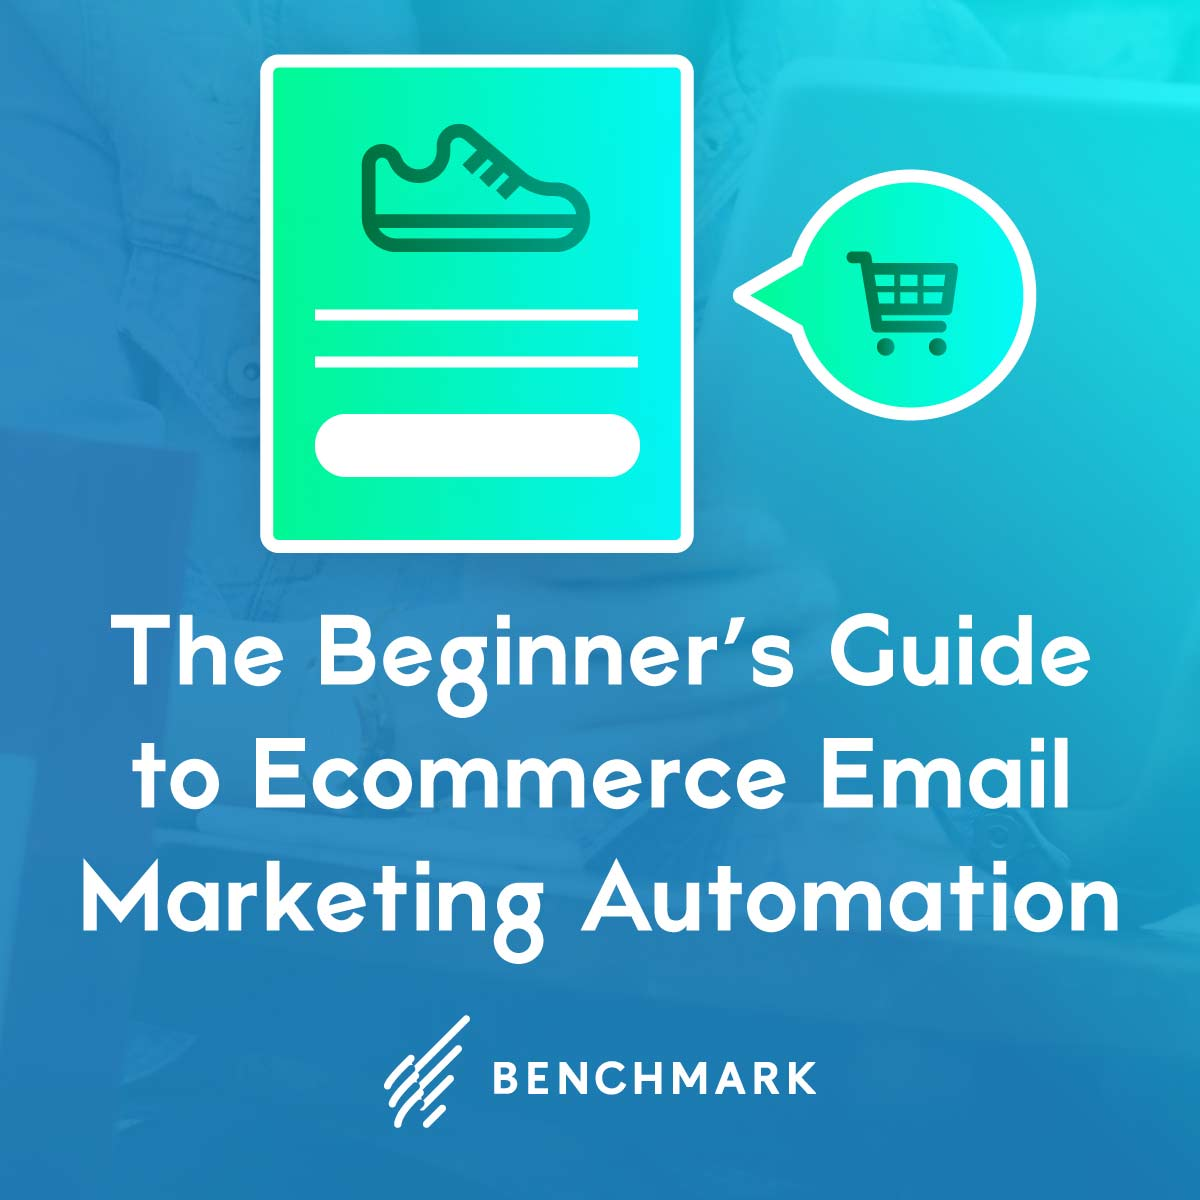 The Beginner's Guide to Ecommerce Email Marketing Automation